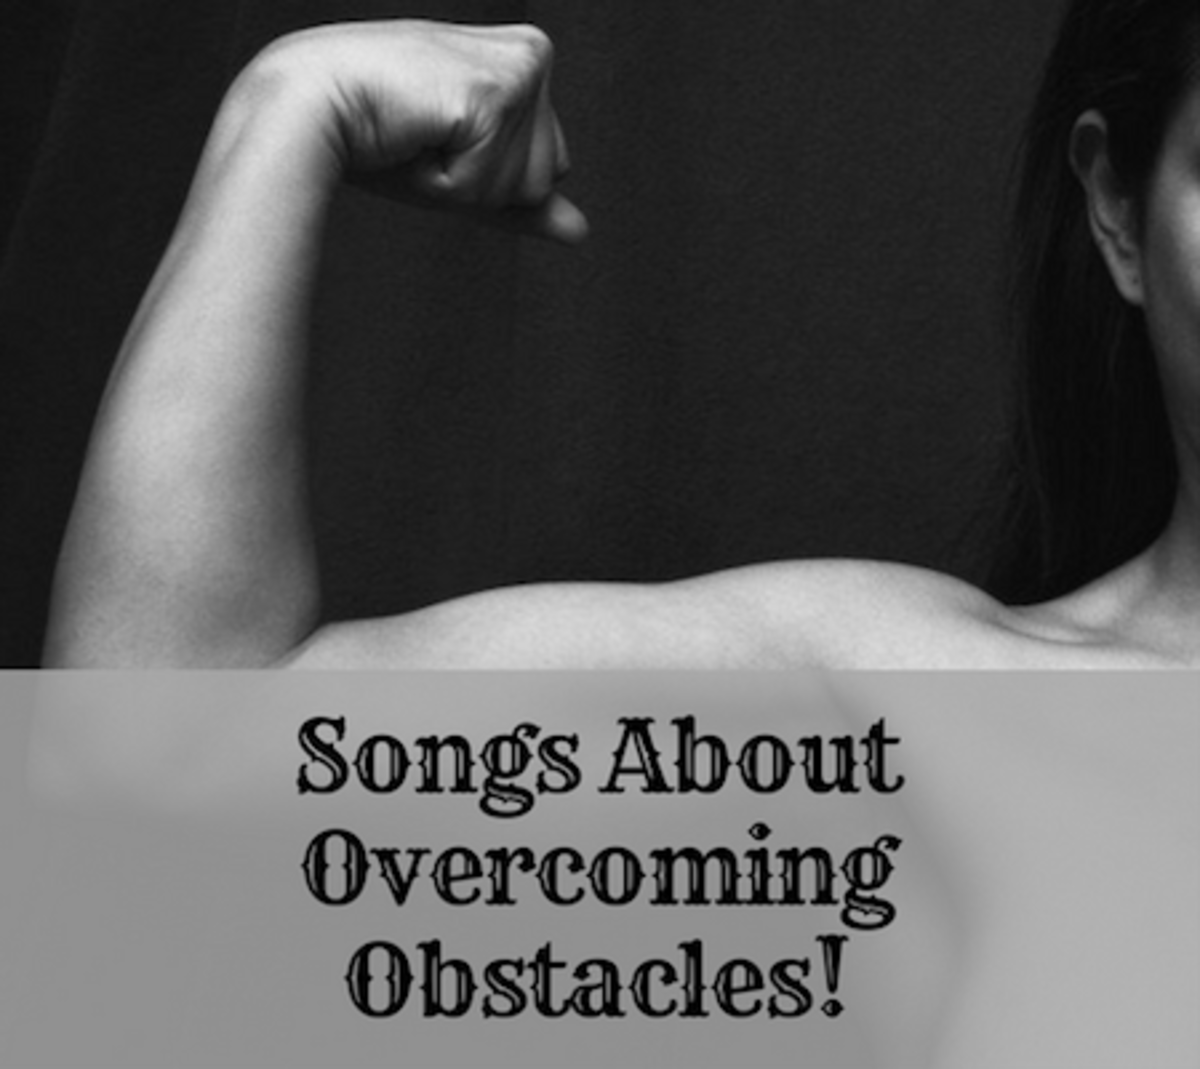 51 Songs About Overcoming Obstacles Adversity Hard Times